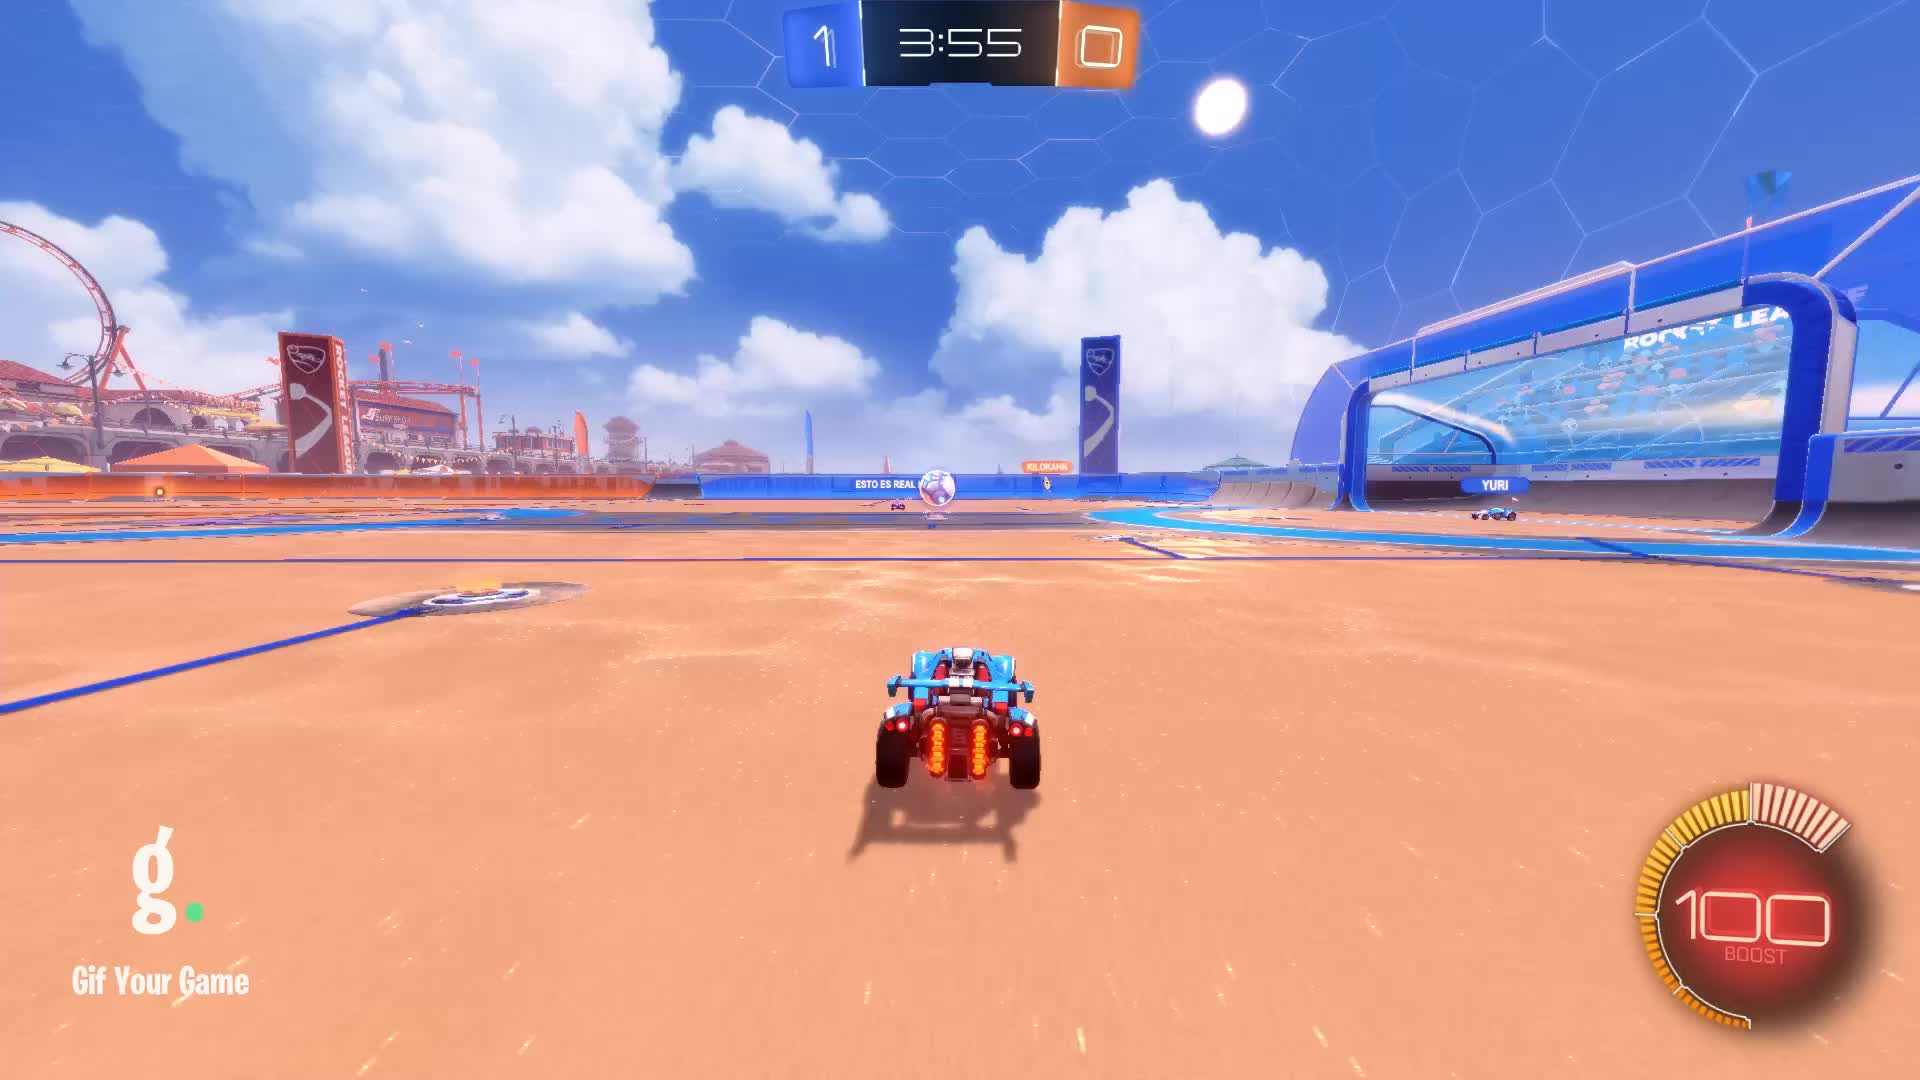 Gif Your Game, GifYourGame, Goal, Rocket League, RocketLeague, itsmfkyleb, Goal 2: itsmfkyleb GIFs